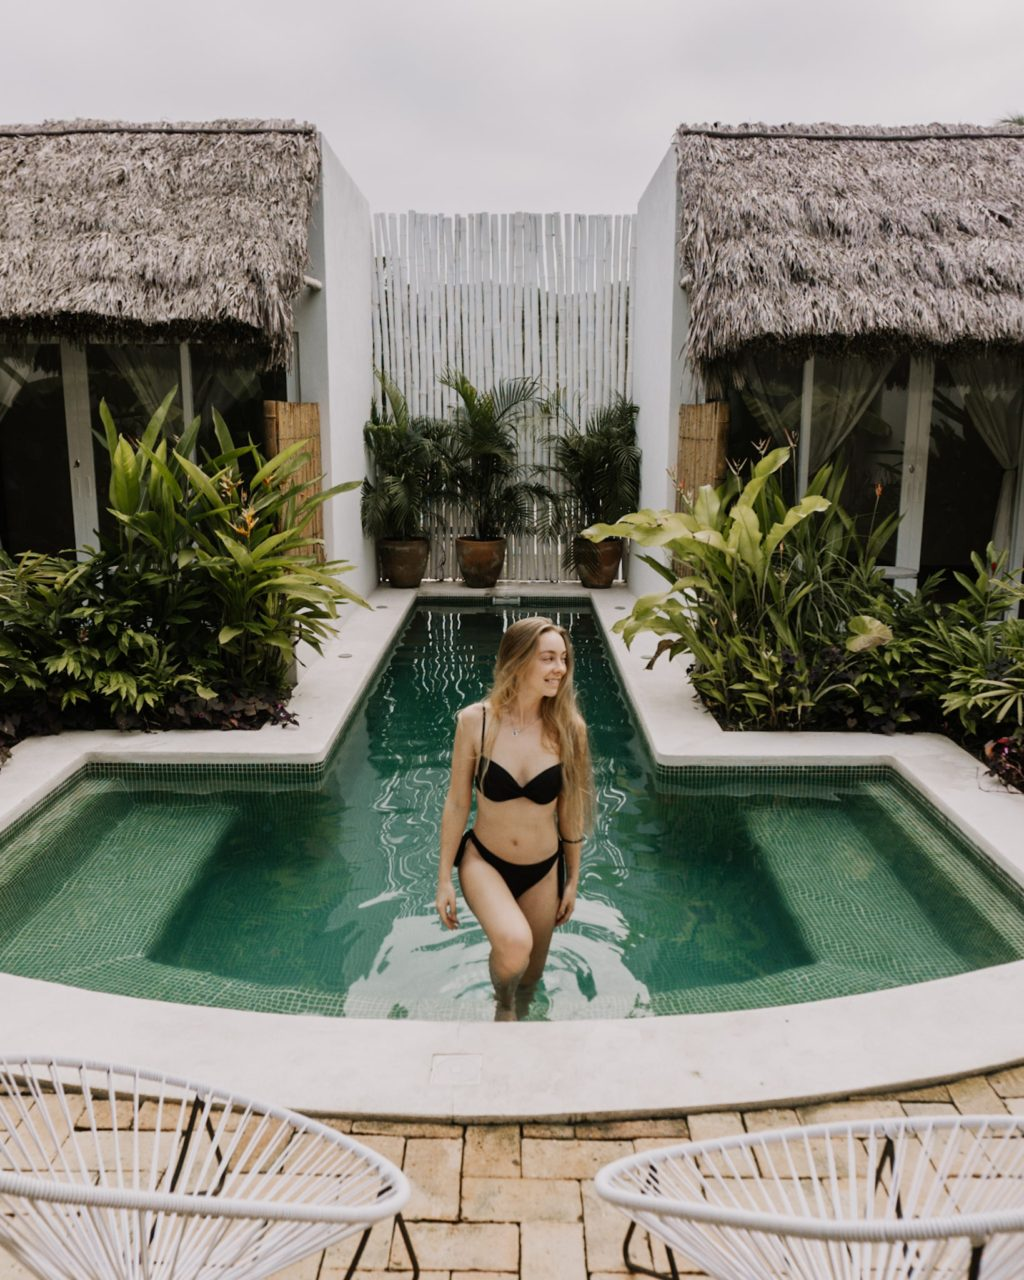 Staying at the Marii Hotel Costero in San Pancho, Mexico   Bucketlist Bri